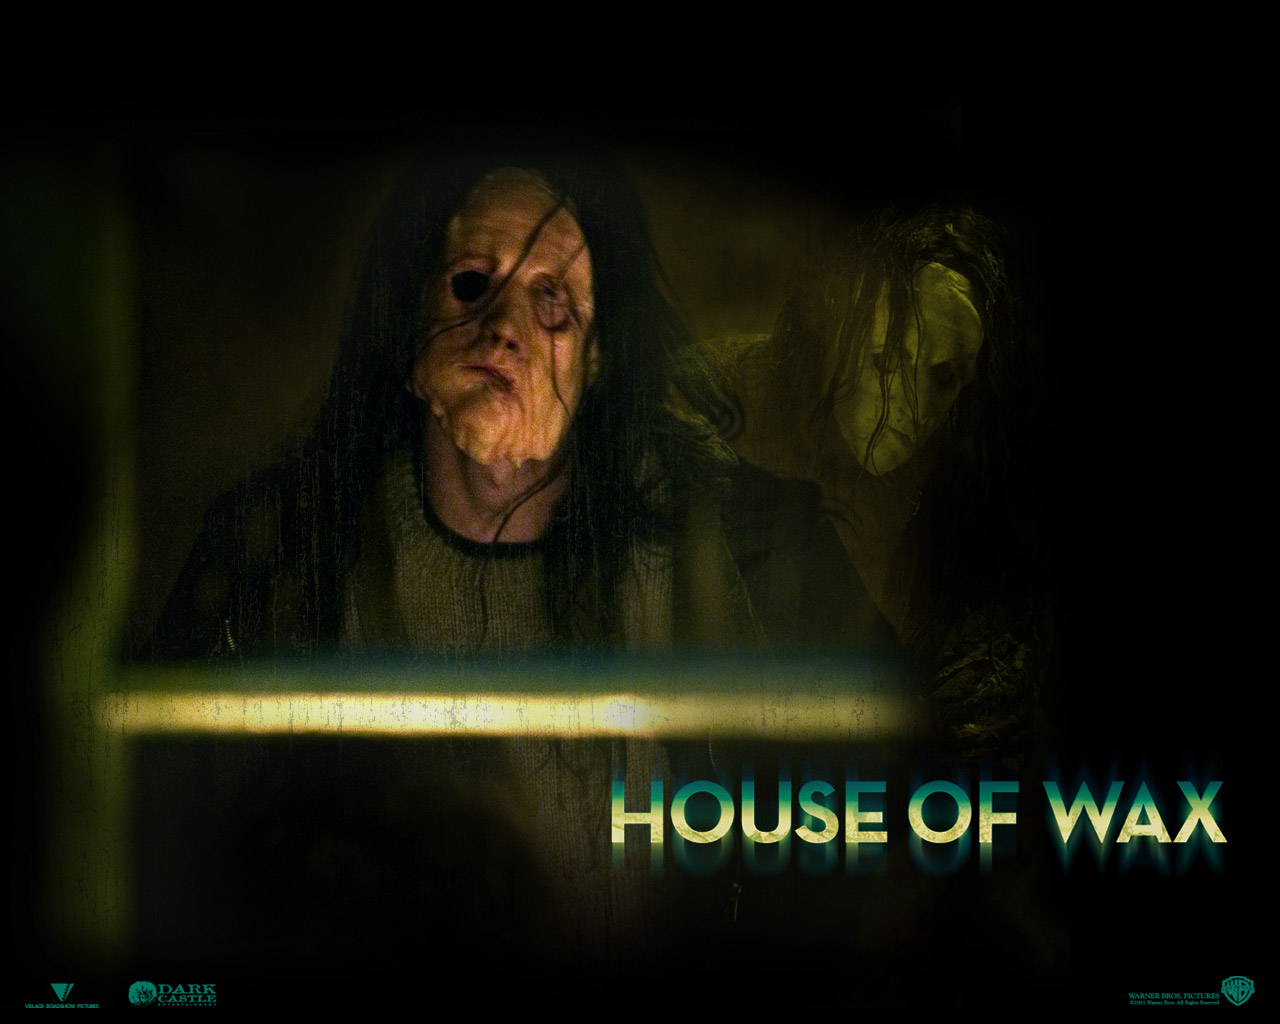 House of wax (2005) rotten tomatoes.